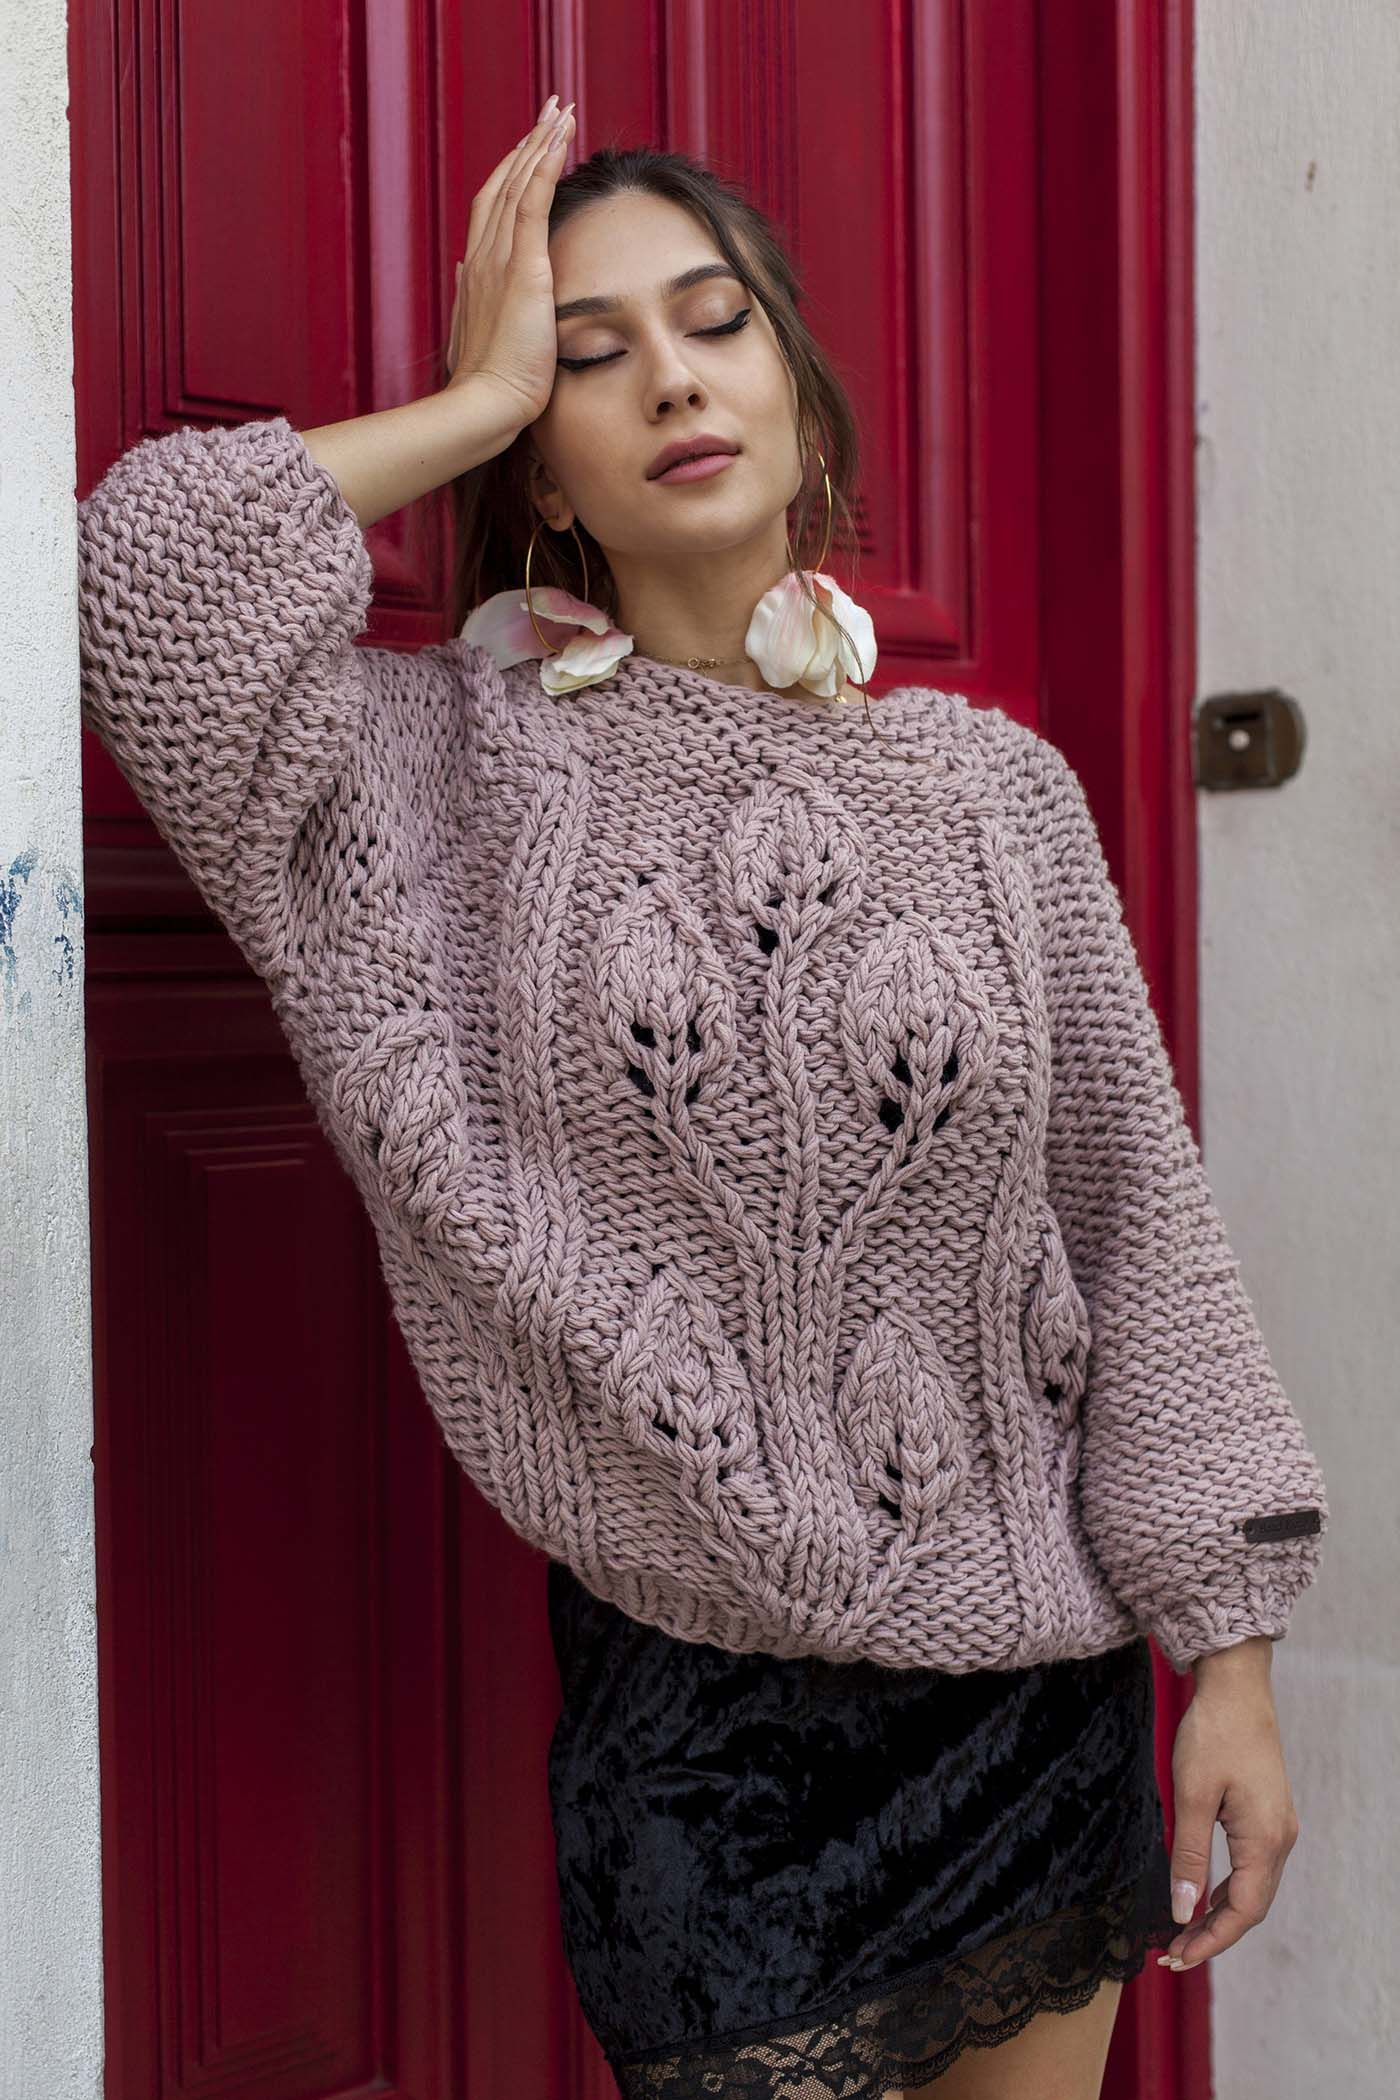 e1cd6b20d301 Ροζ Πλεκτό Πουλόβερ Sweater knitted fashion winter 2018 bloeur bloeur.gr  woman